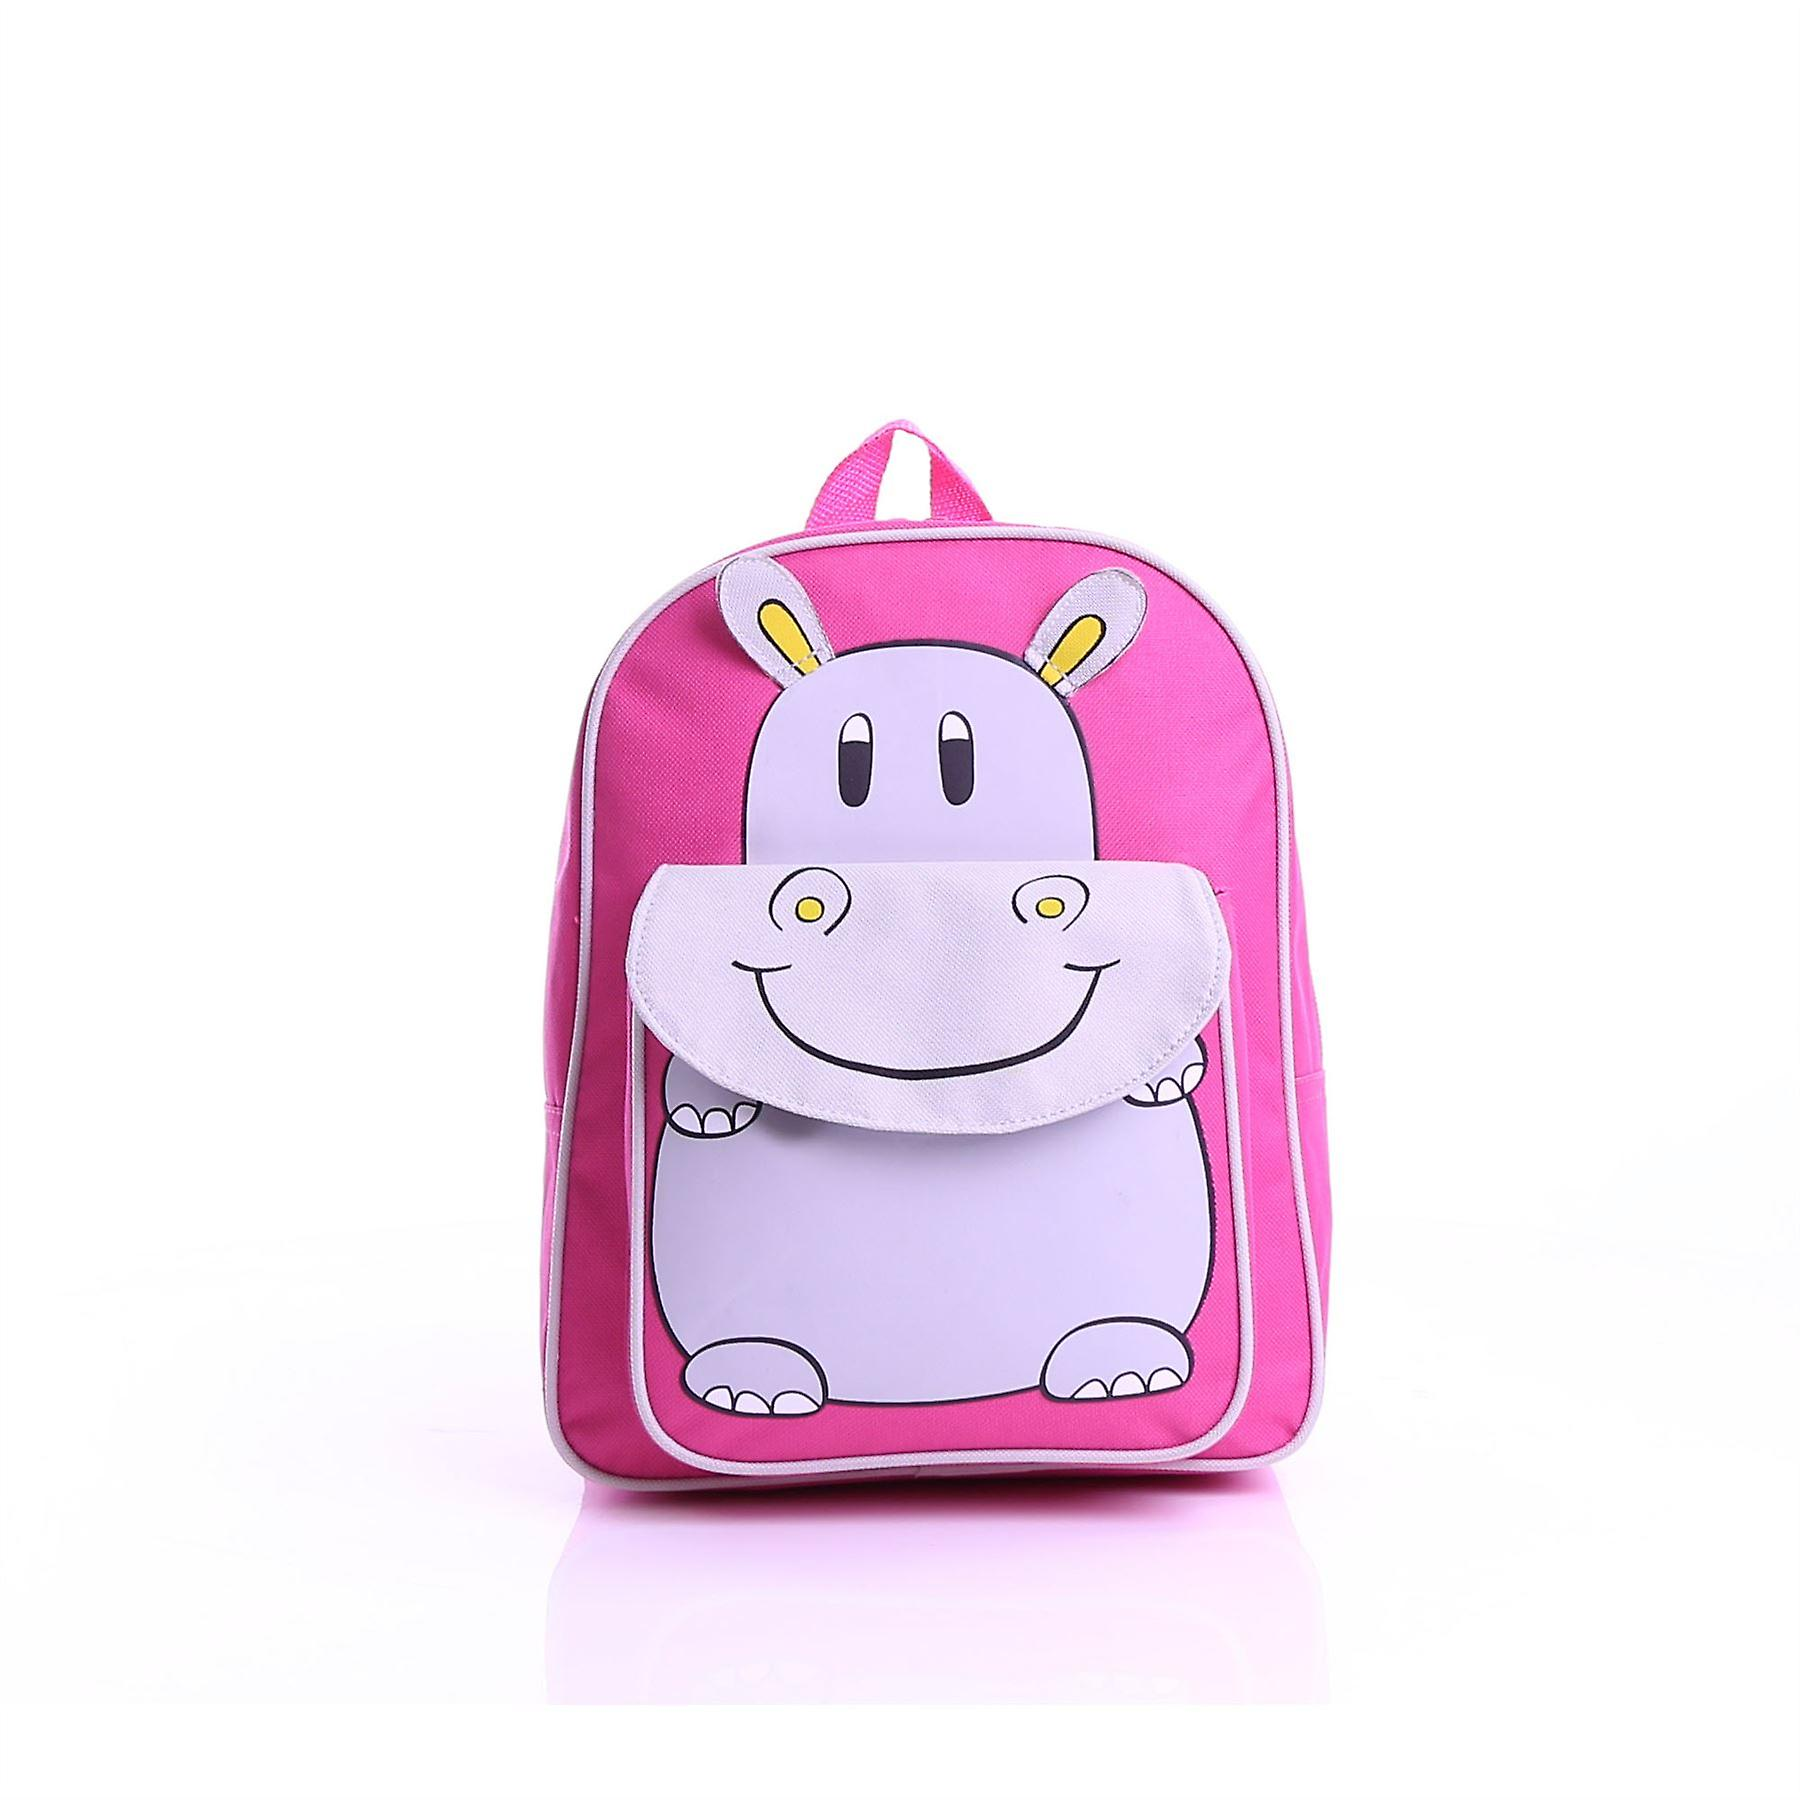 Karabar Kids Hippo Backpack, Pink